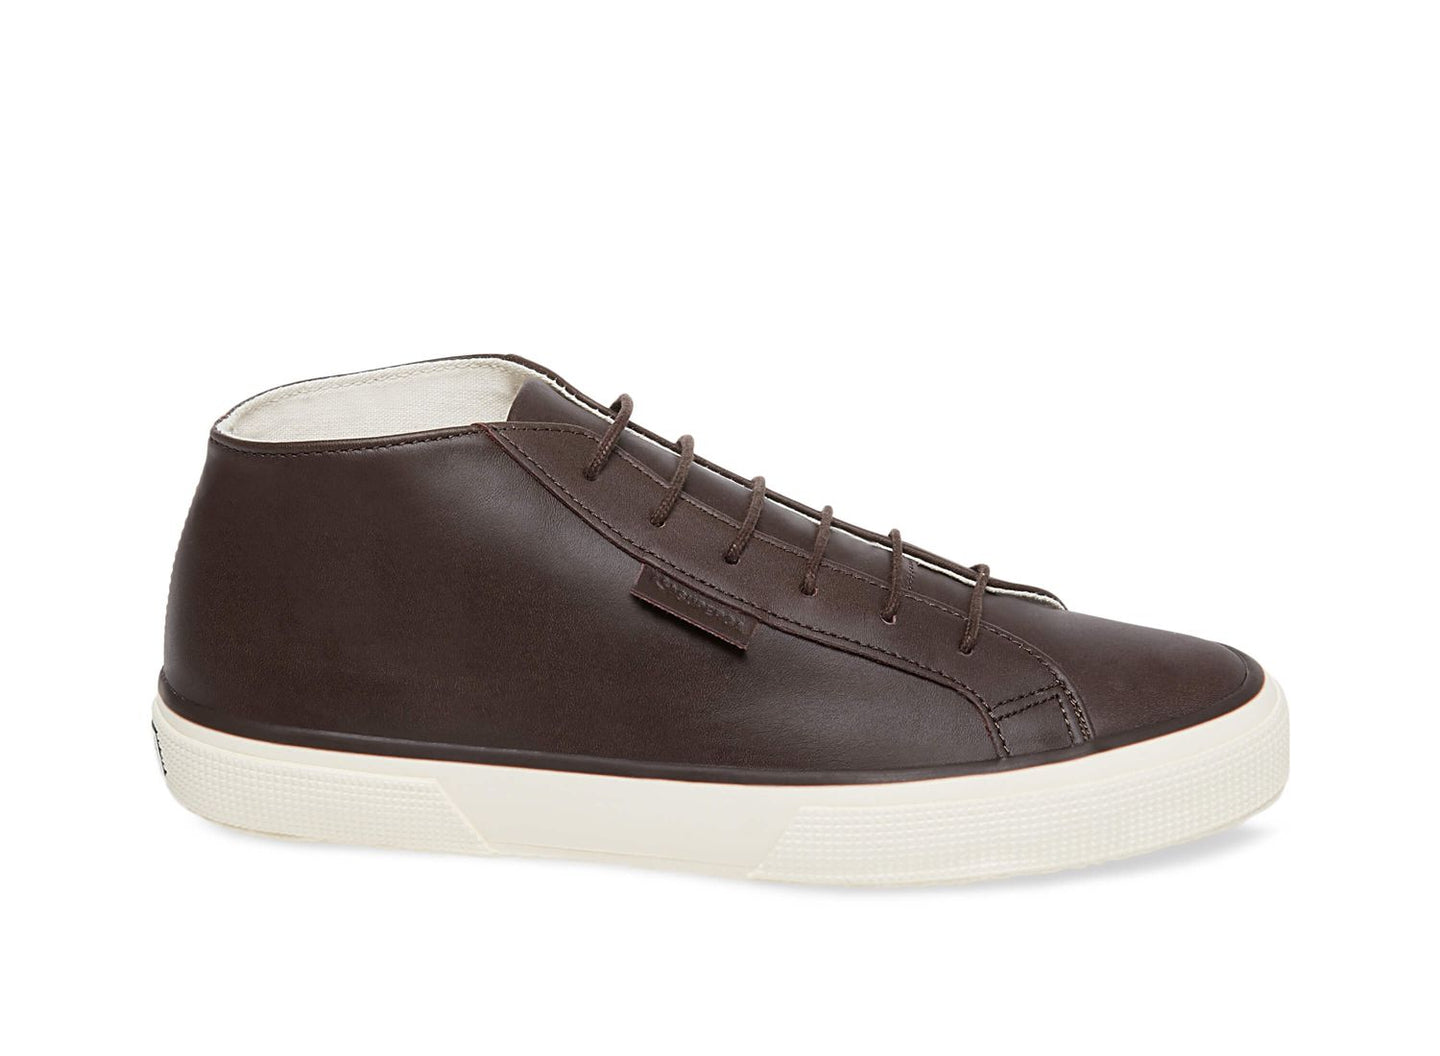 2754 FGLDYEDM DARK BROWN -